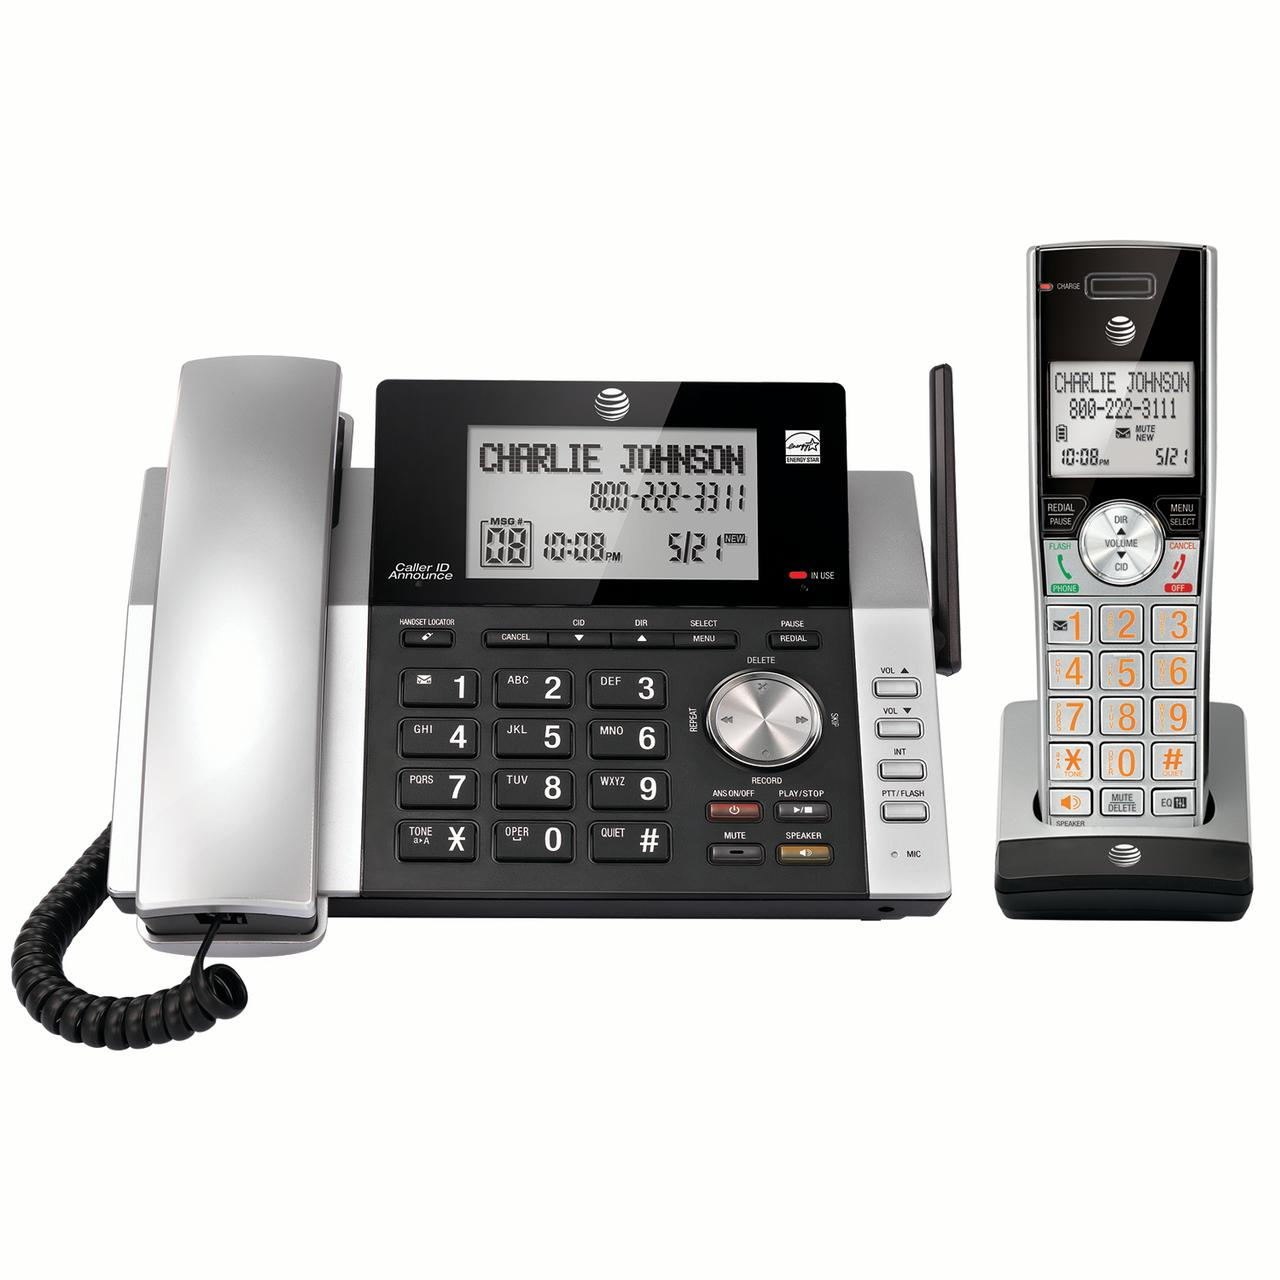 AT&T CL84115 DECT 6.0 Expandable Cordless Phone with Answering System and Caller ID, Silver/Black with 1 Handset